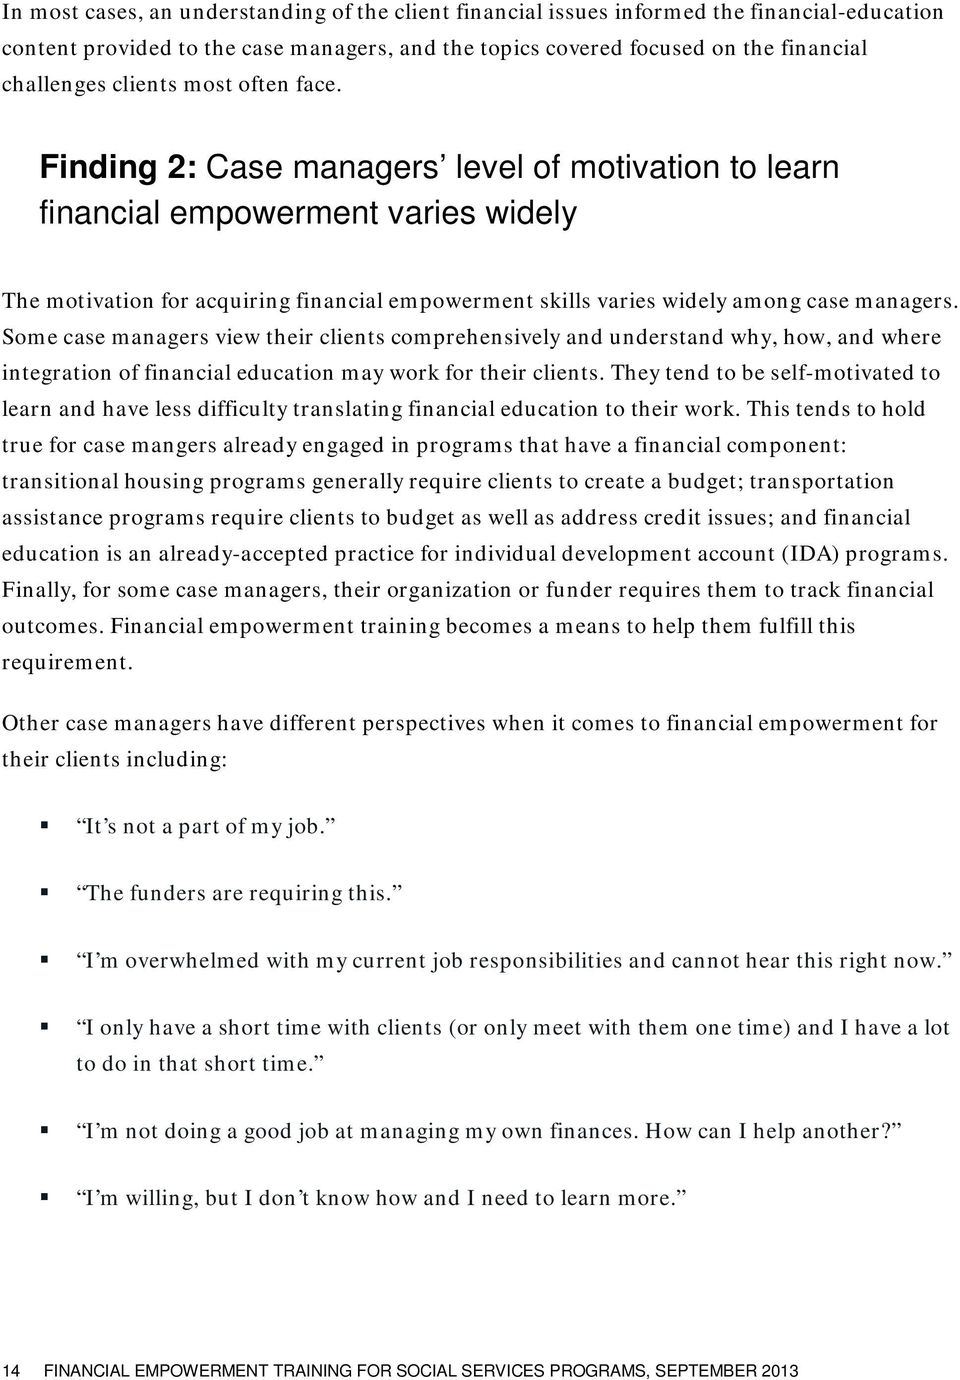 Finding 2: Case managers level of motivation to learn financial empowerment varies widely The motivation for acquiring financial empowerment skills varies widely among case managers.